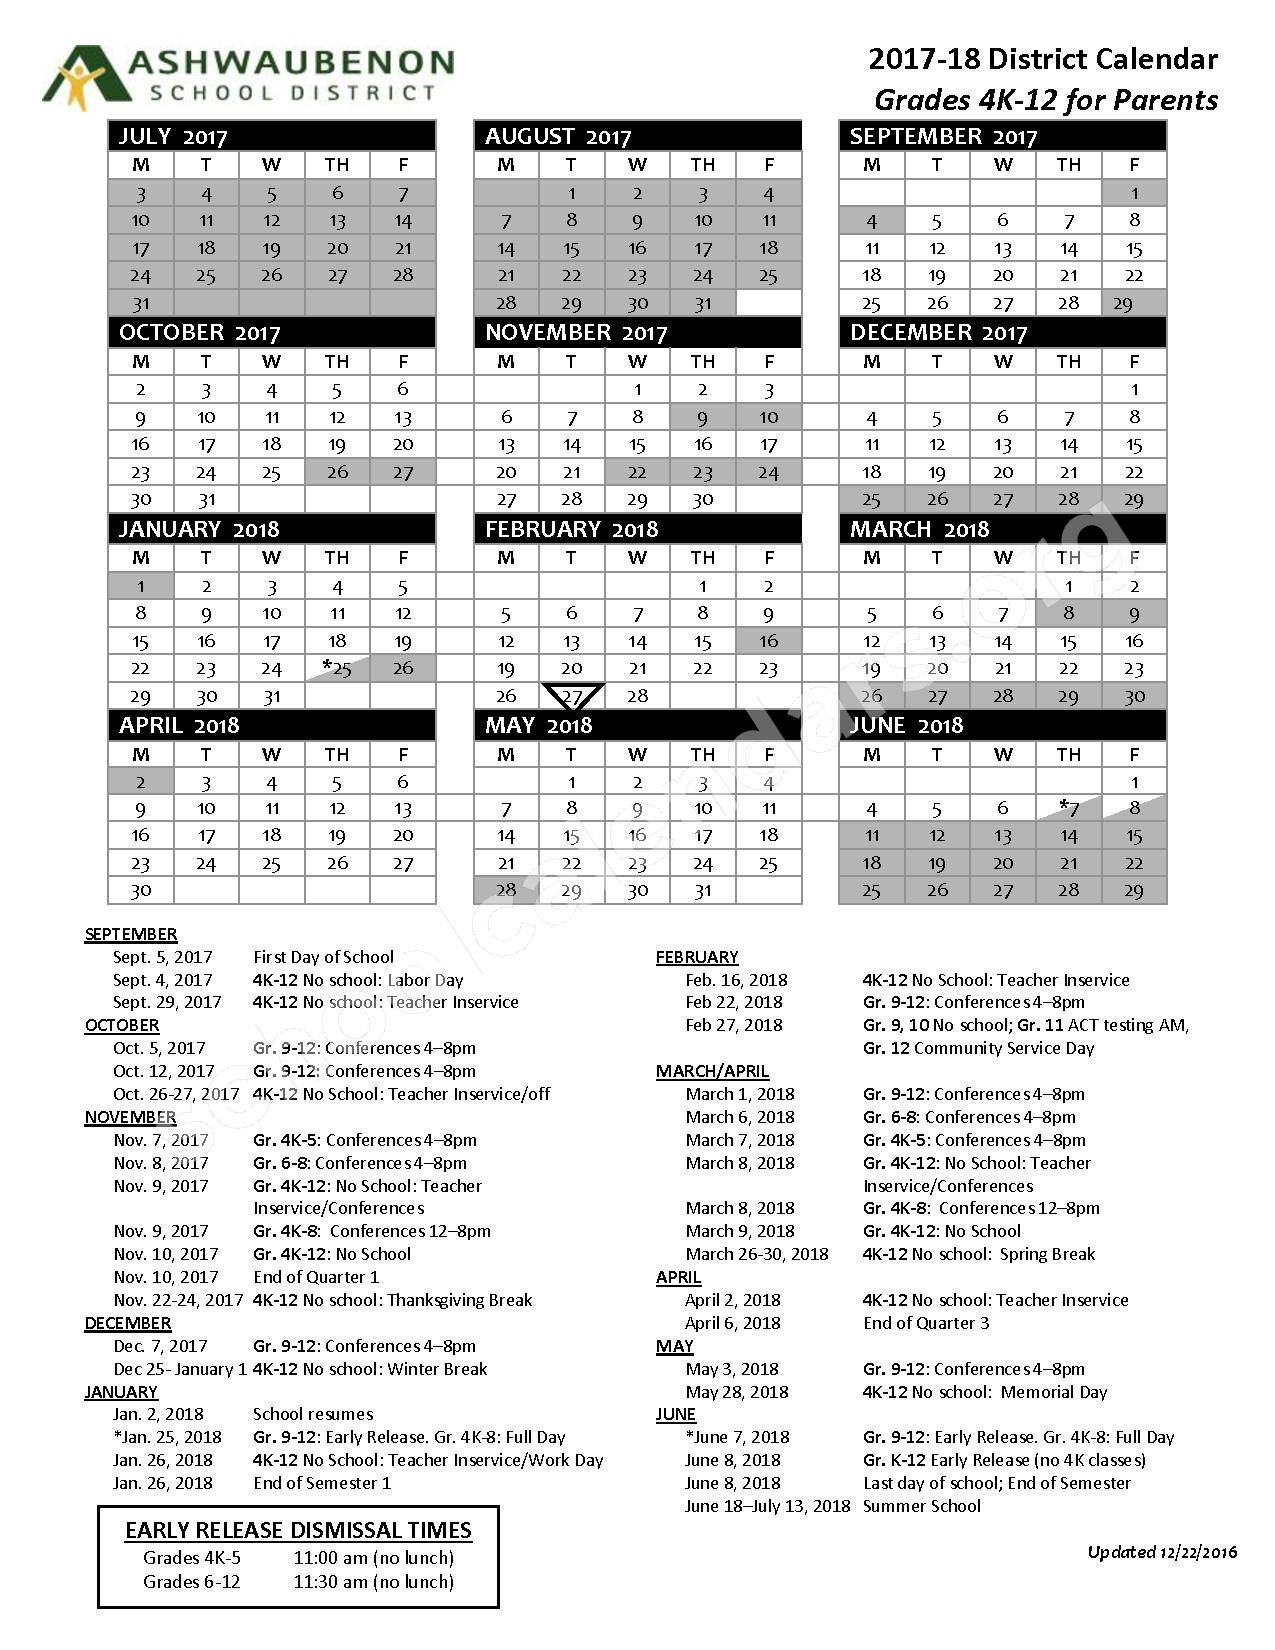 2017 - 2018 District Calendar – Ashwaubenon School District – page 1